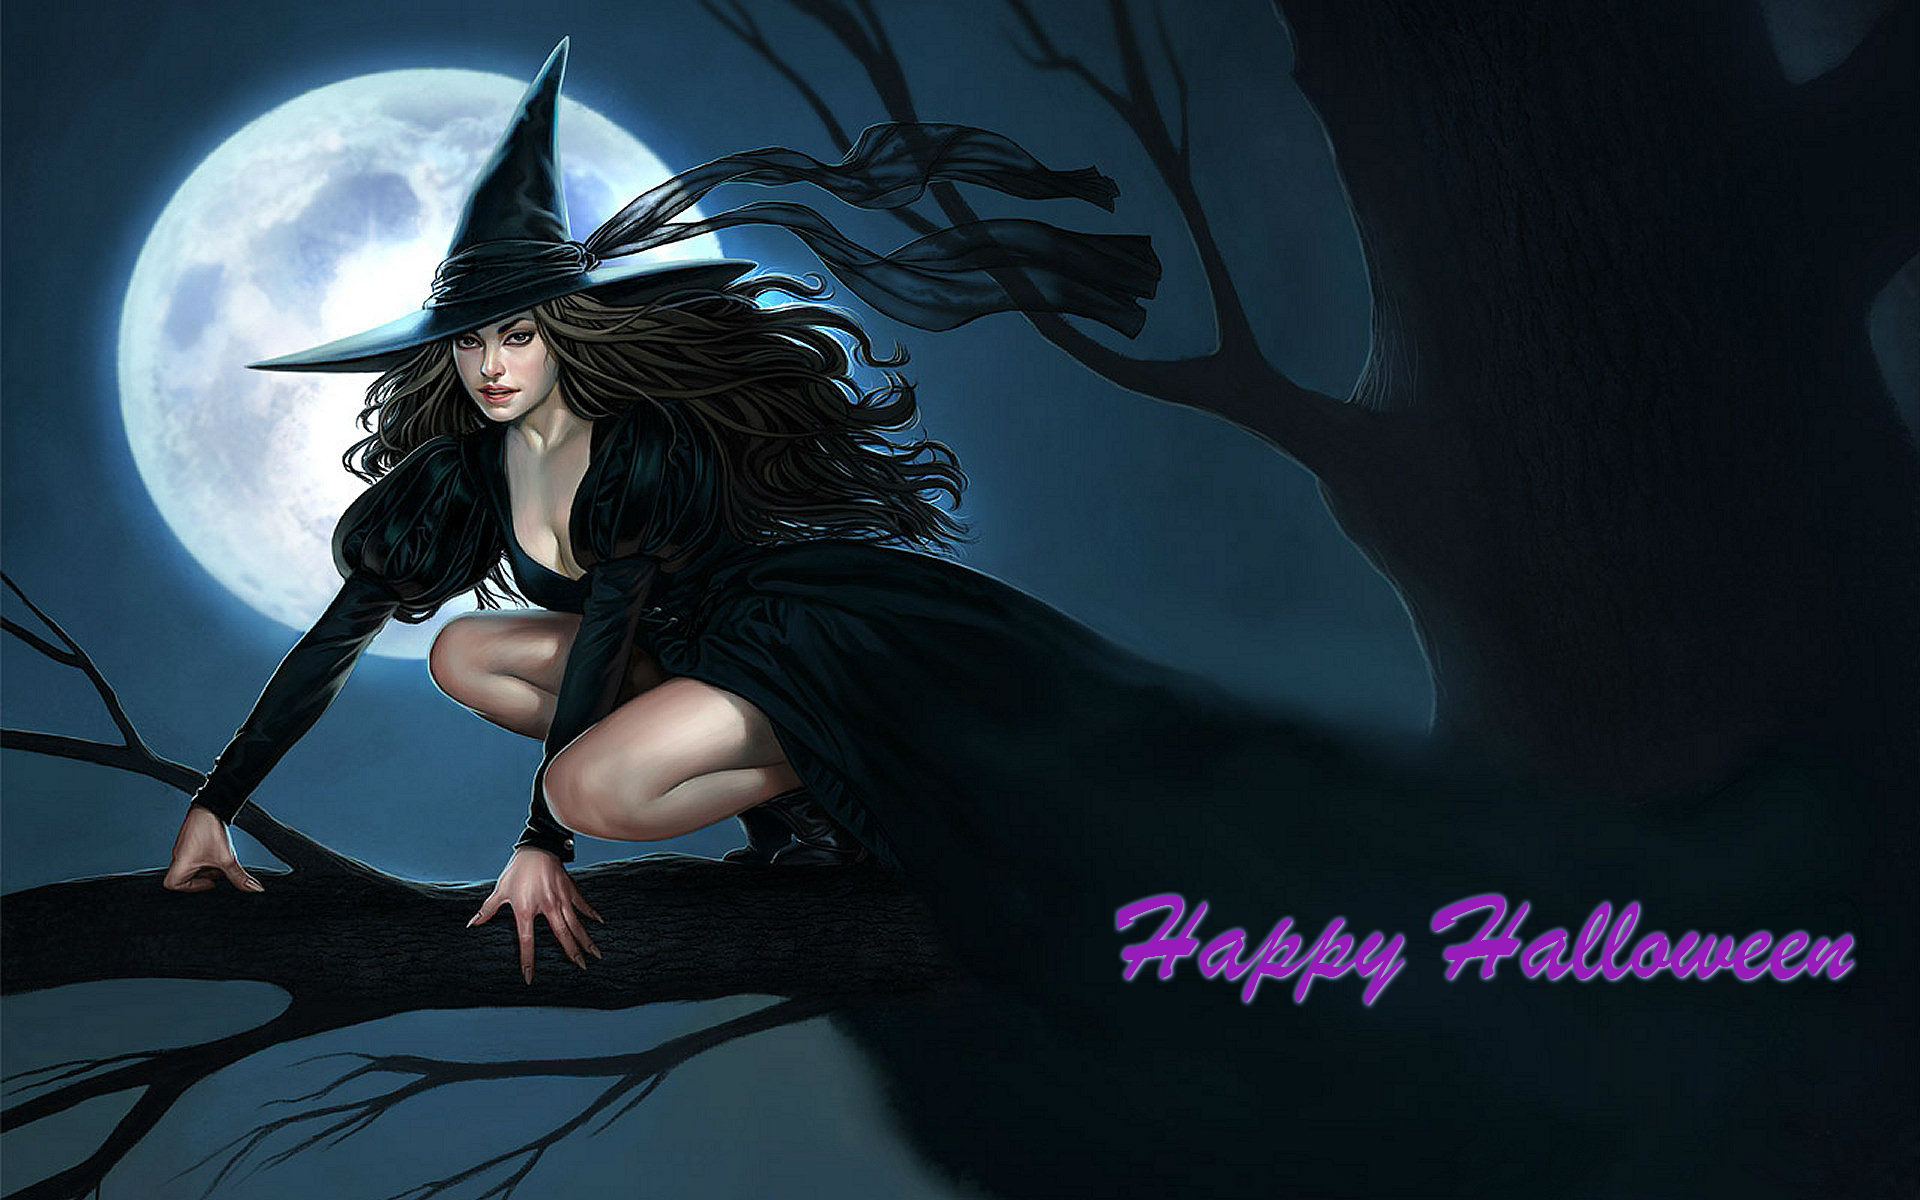 The Witch of Halloween Wallpaper · HD Wallpapers